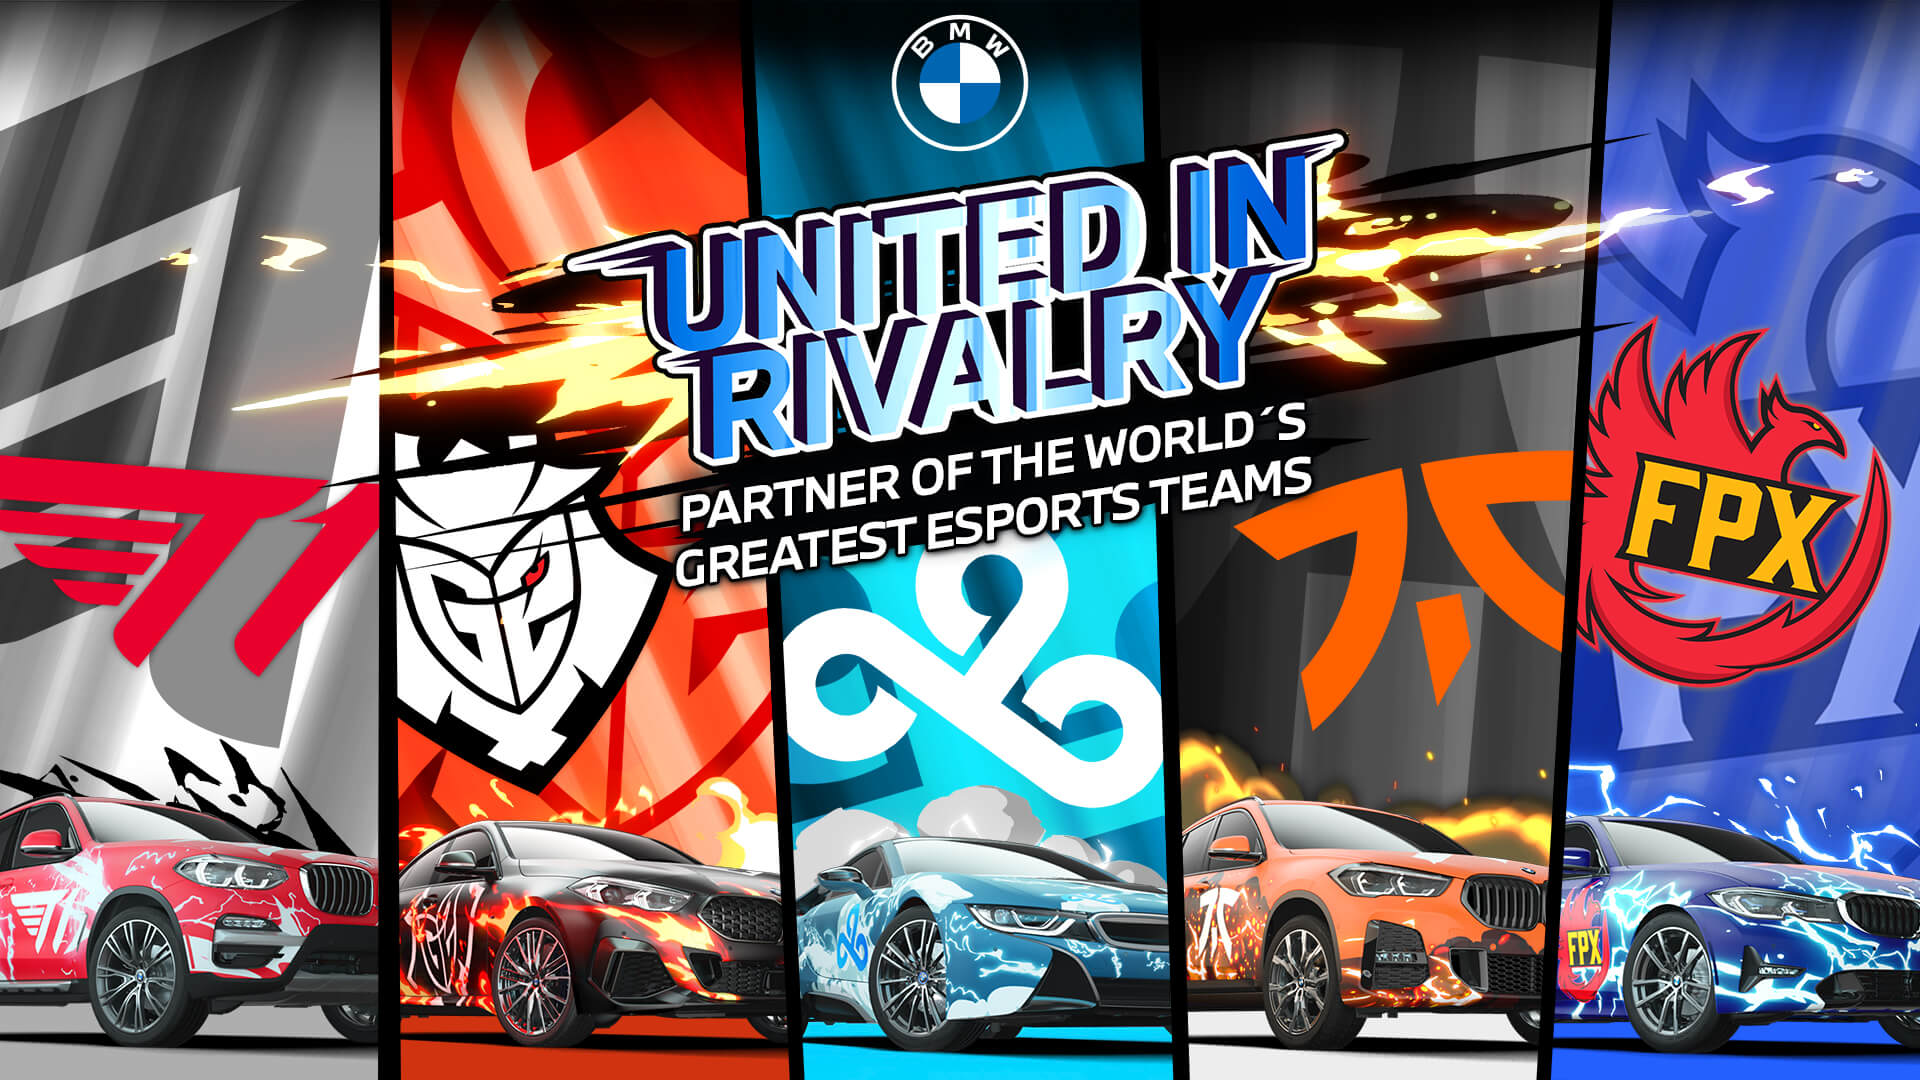 BMW Cloud9 T1 Fnatic G2 FunPlus Phoenix